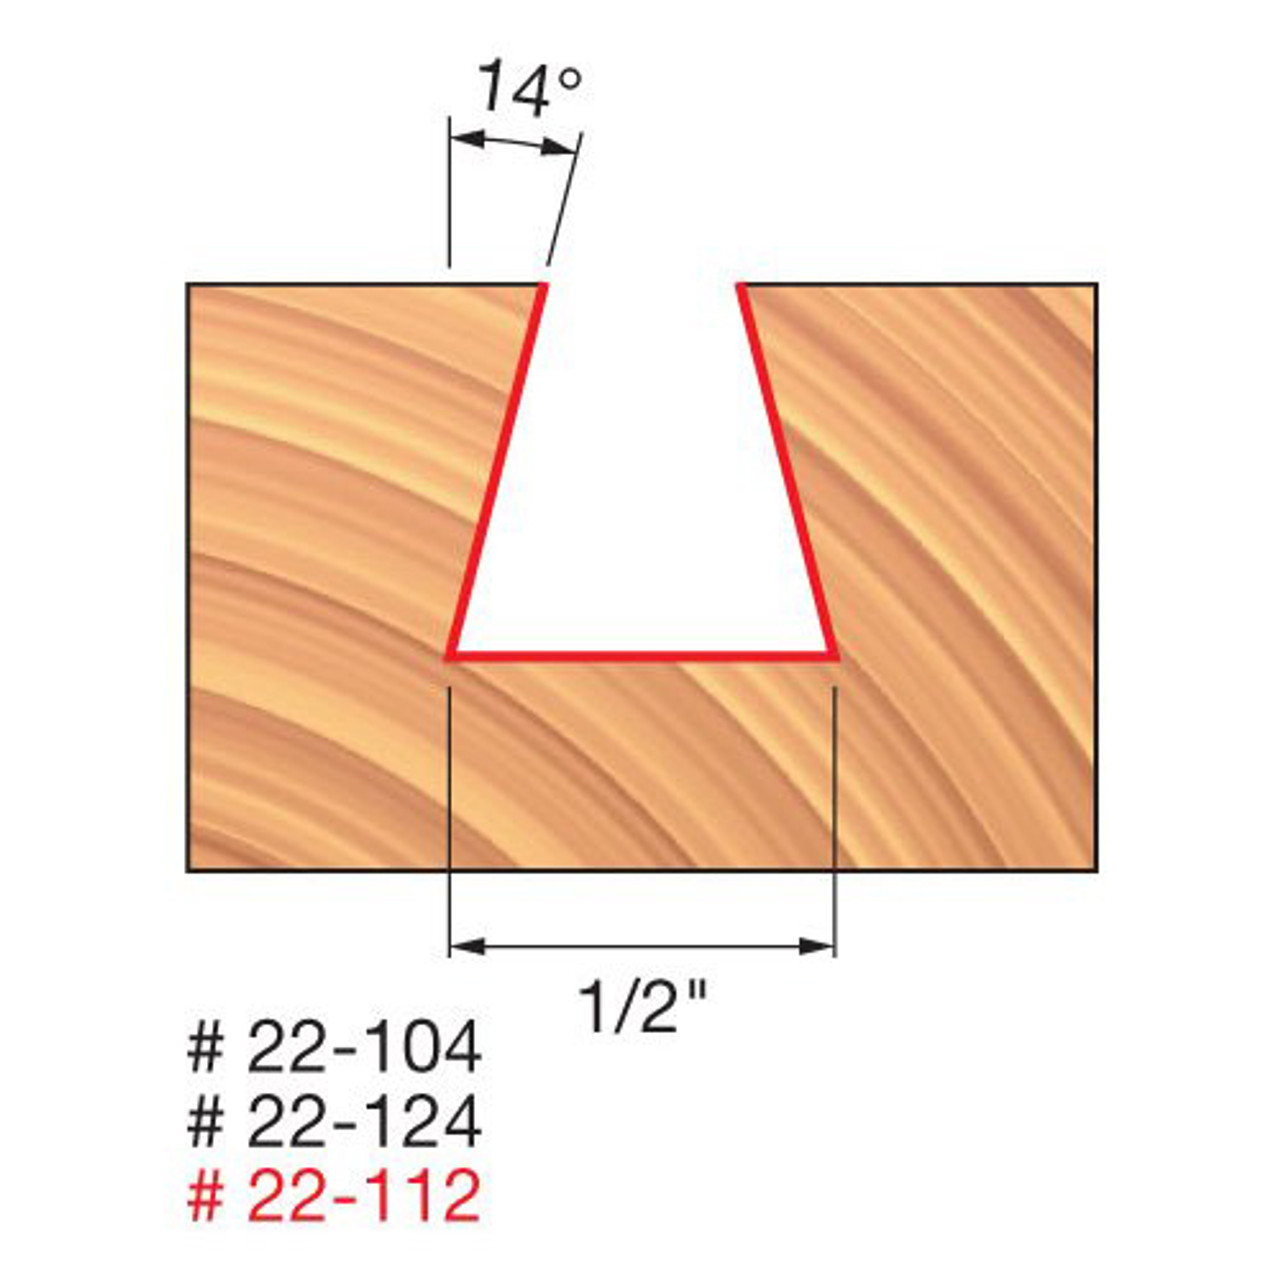 """Freud 1/2"""" Dovetail Router Bit, 14 Deg. Angle, 1/2"""" Carbide Height, 1/4"""" Shank, 1/2"""" Overall Diameter, 2-5/8"""" Overall"""